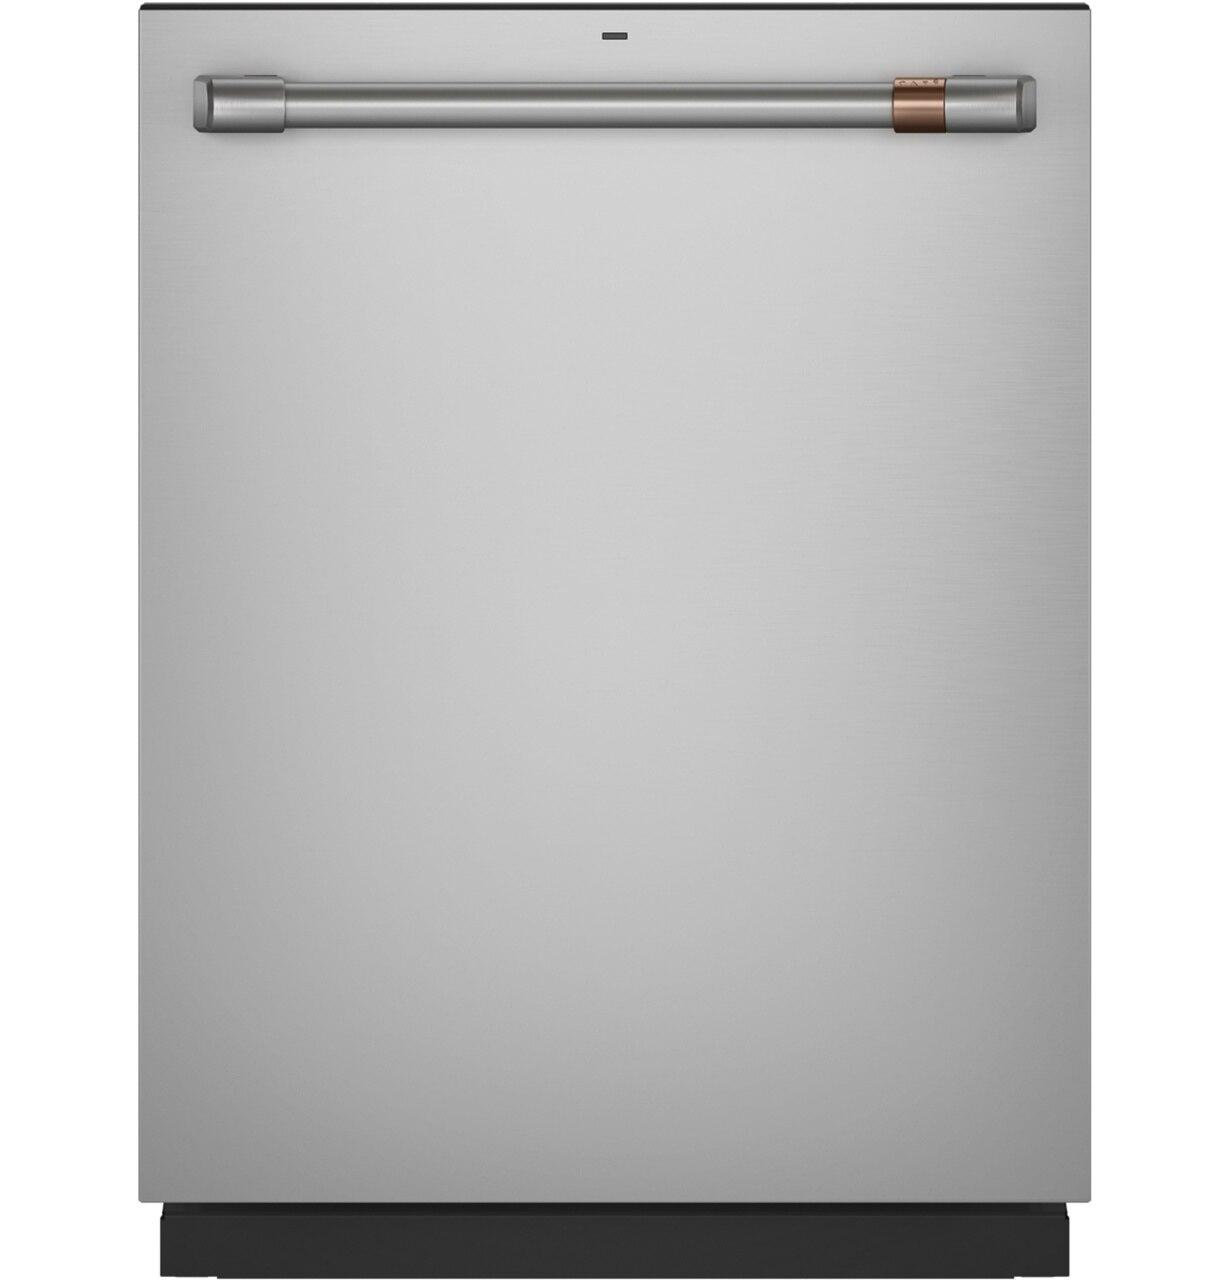 CafeStainless Steel Interior Dishwasher With Sanitize And Ultra Wash & Dry